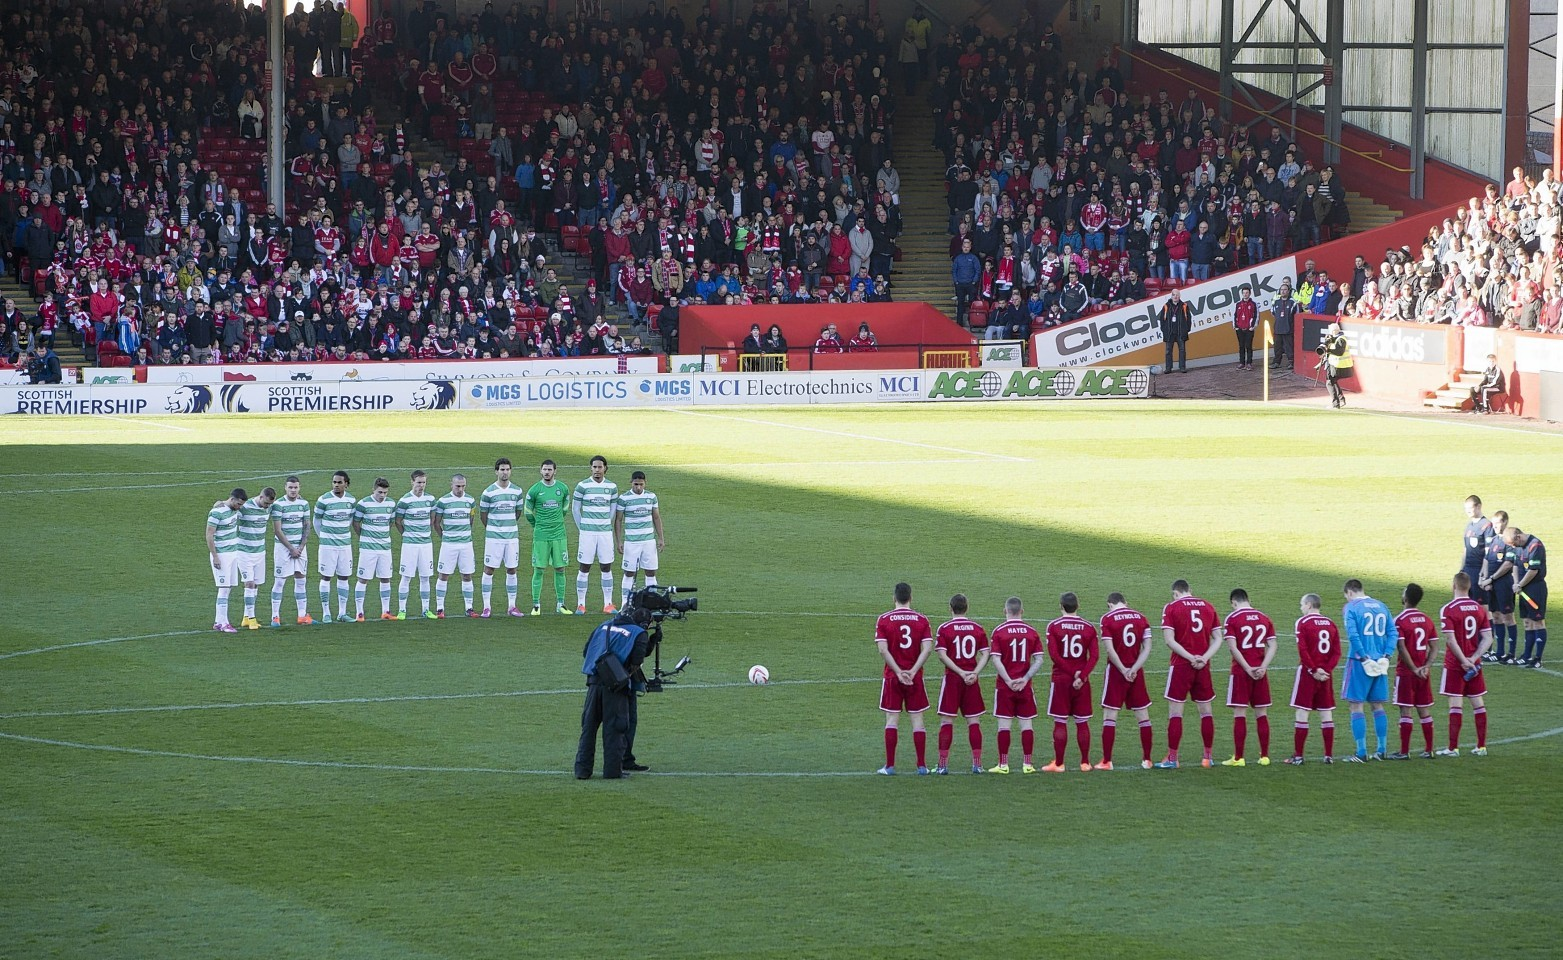 The players paid their respects before the match.